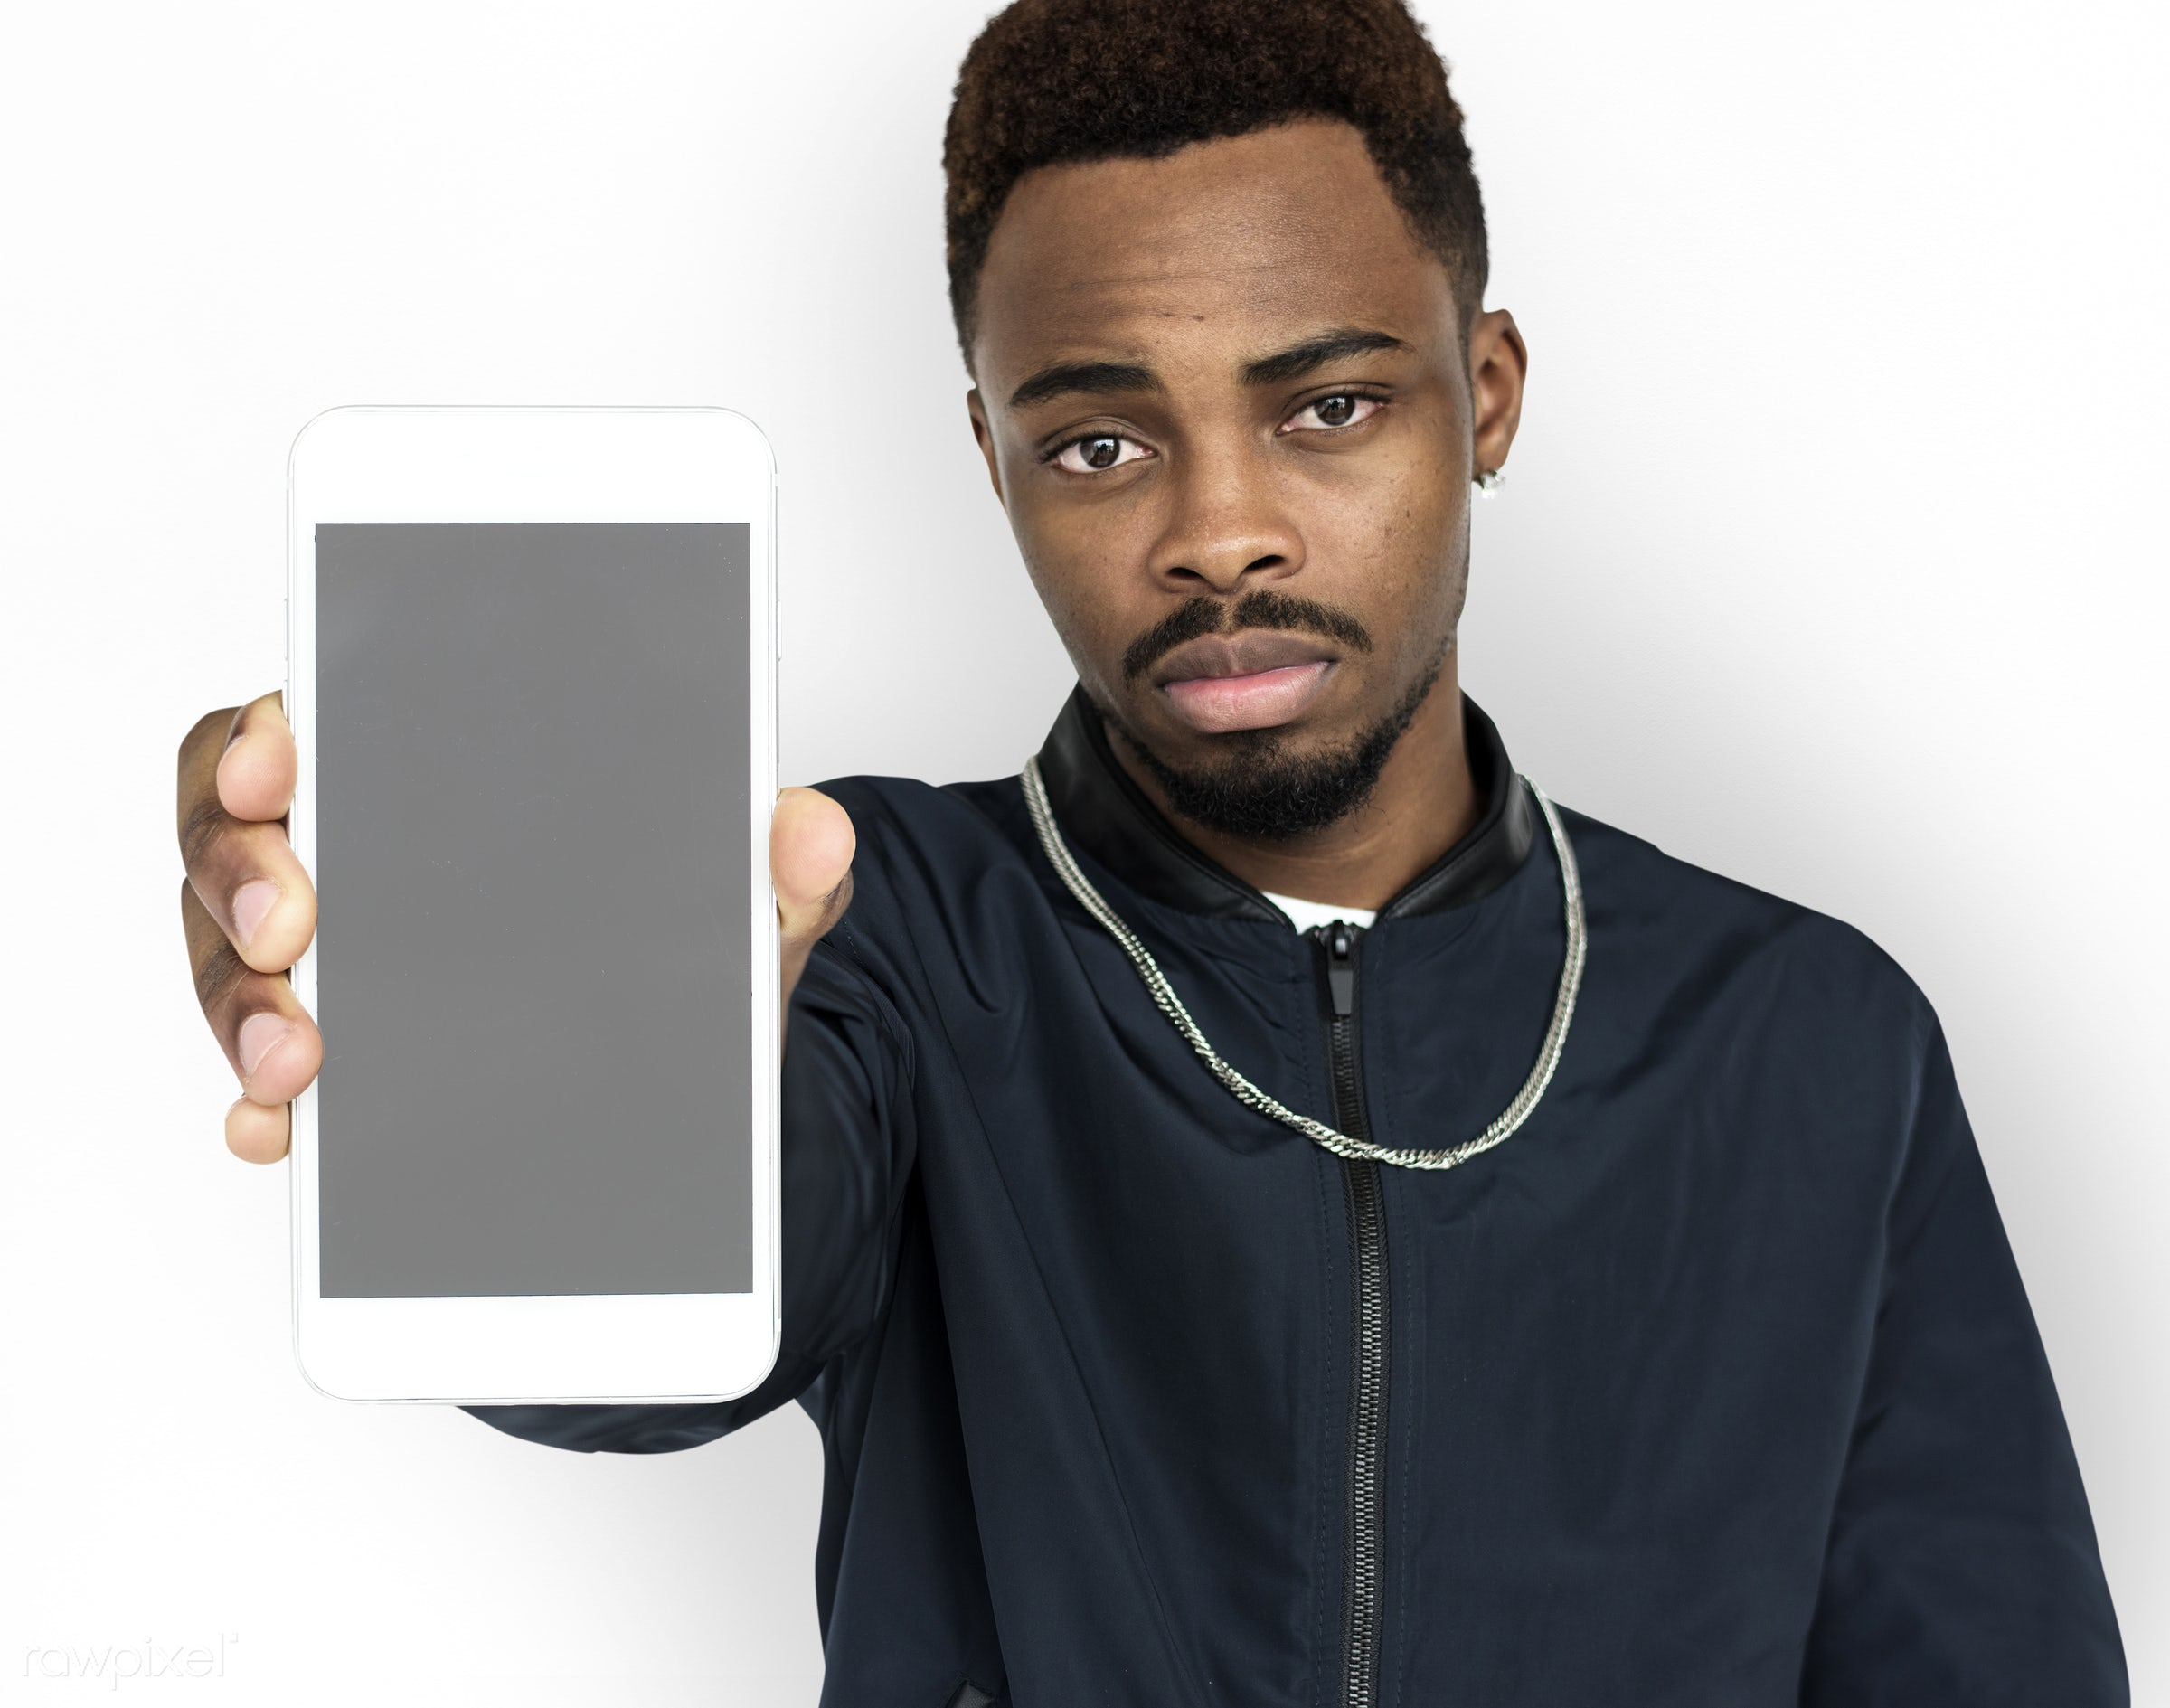 studio, expression, phone, person, technology, portable, poker face, holding, people, mobile phone, focused, serious, black...